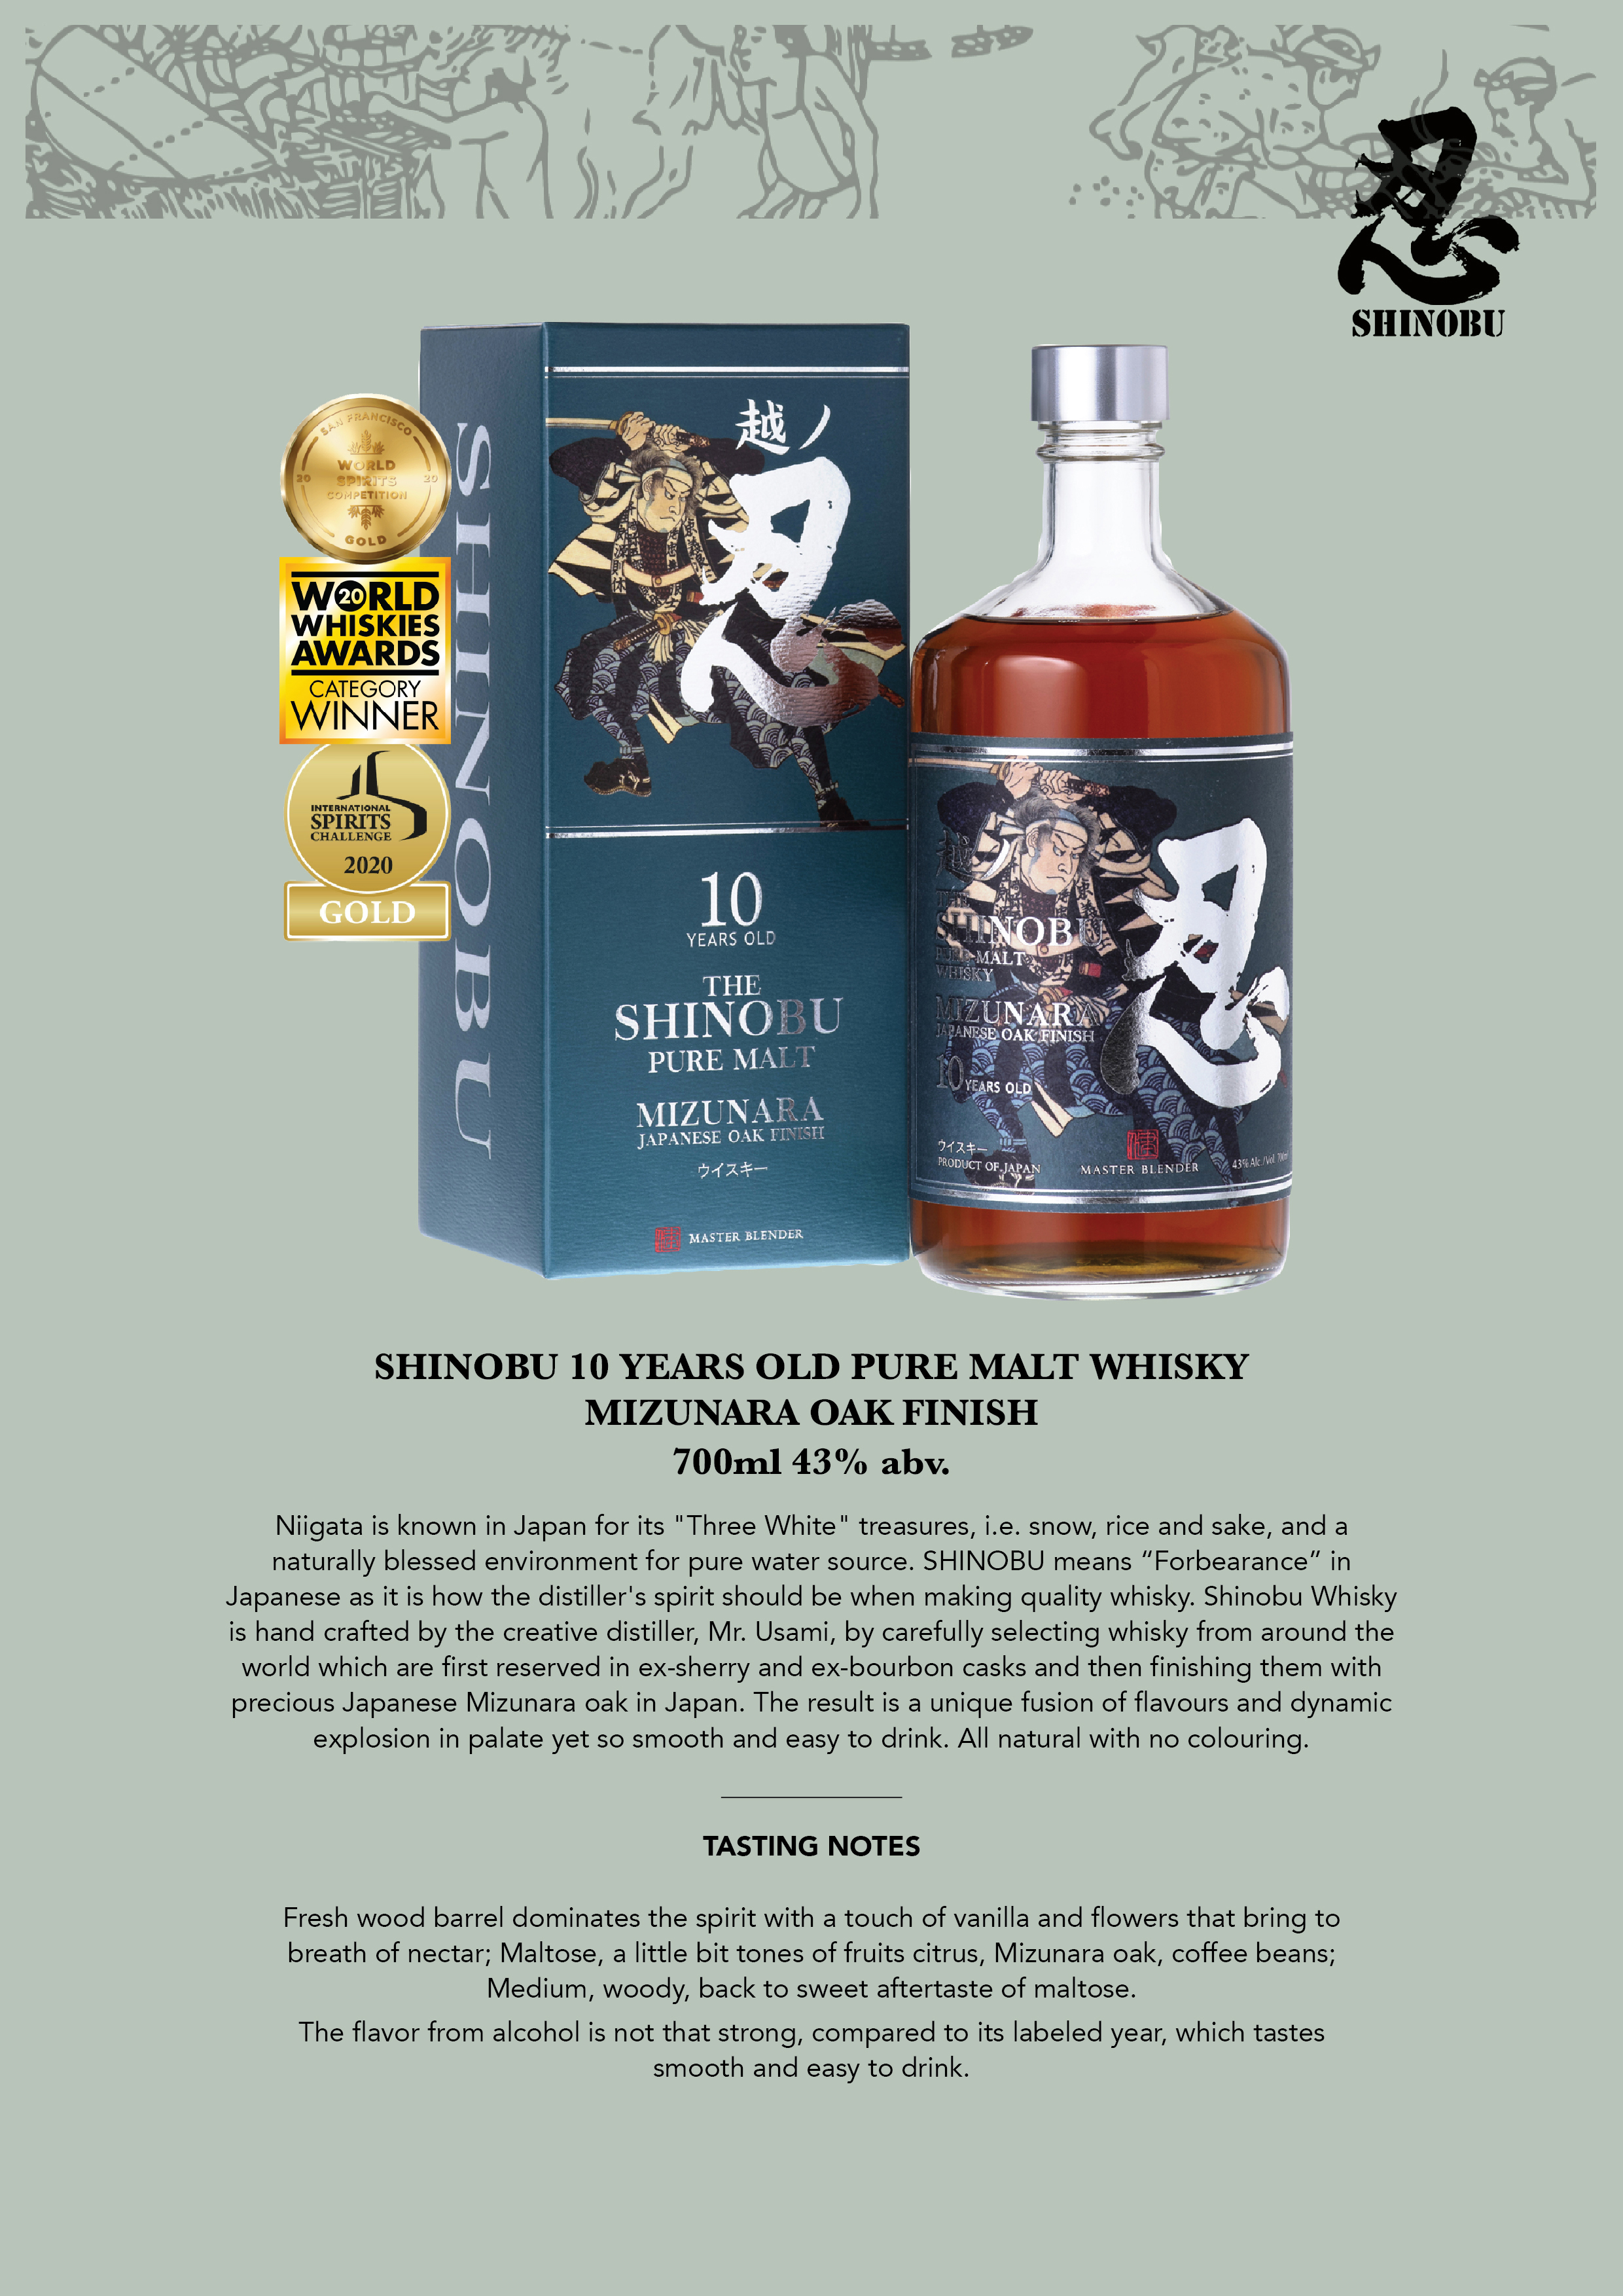 Shinobu 10 Years Old Pure Malt Tasting Note